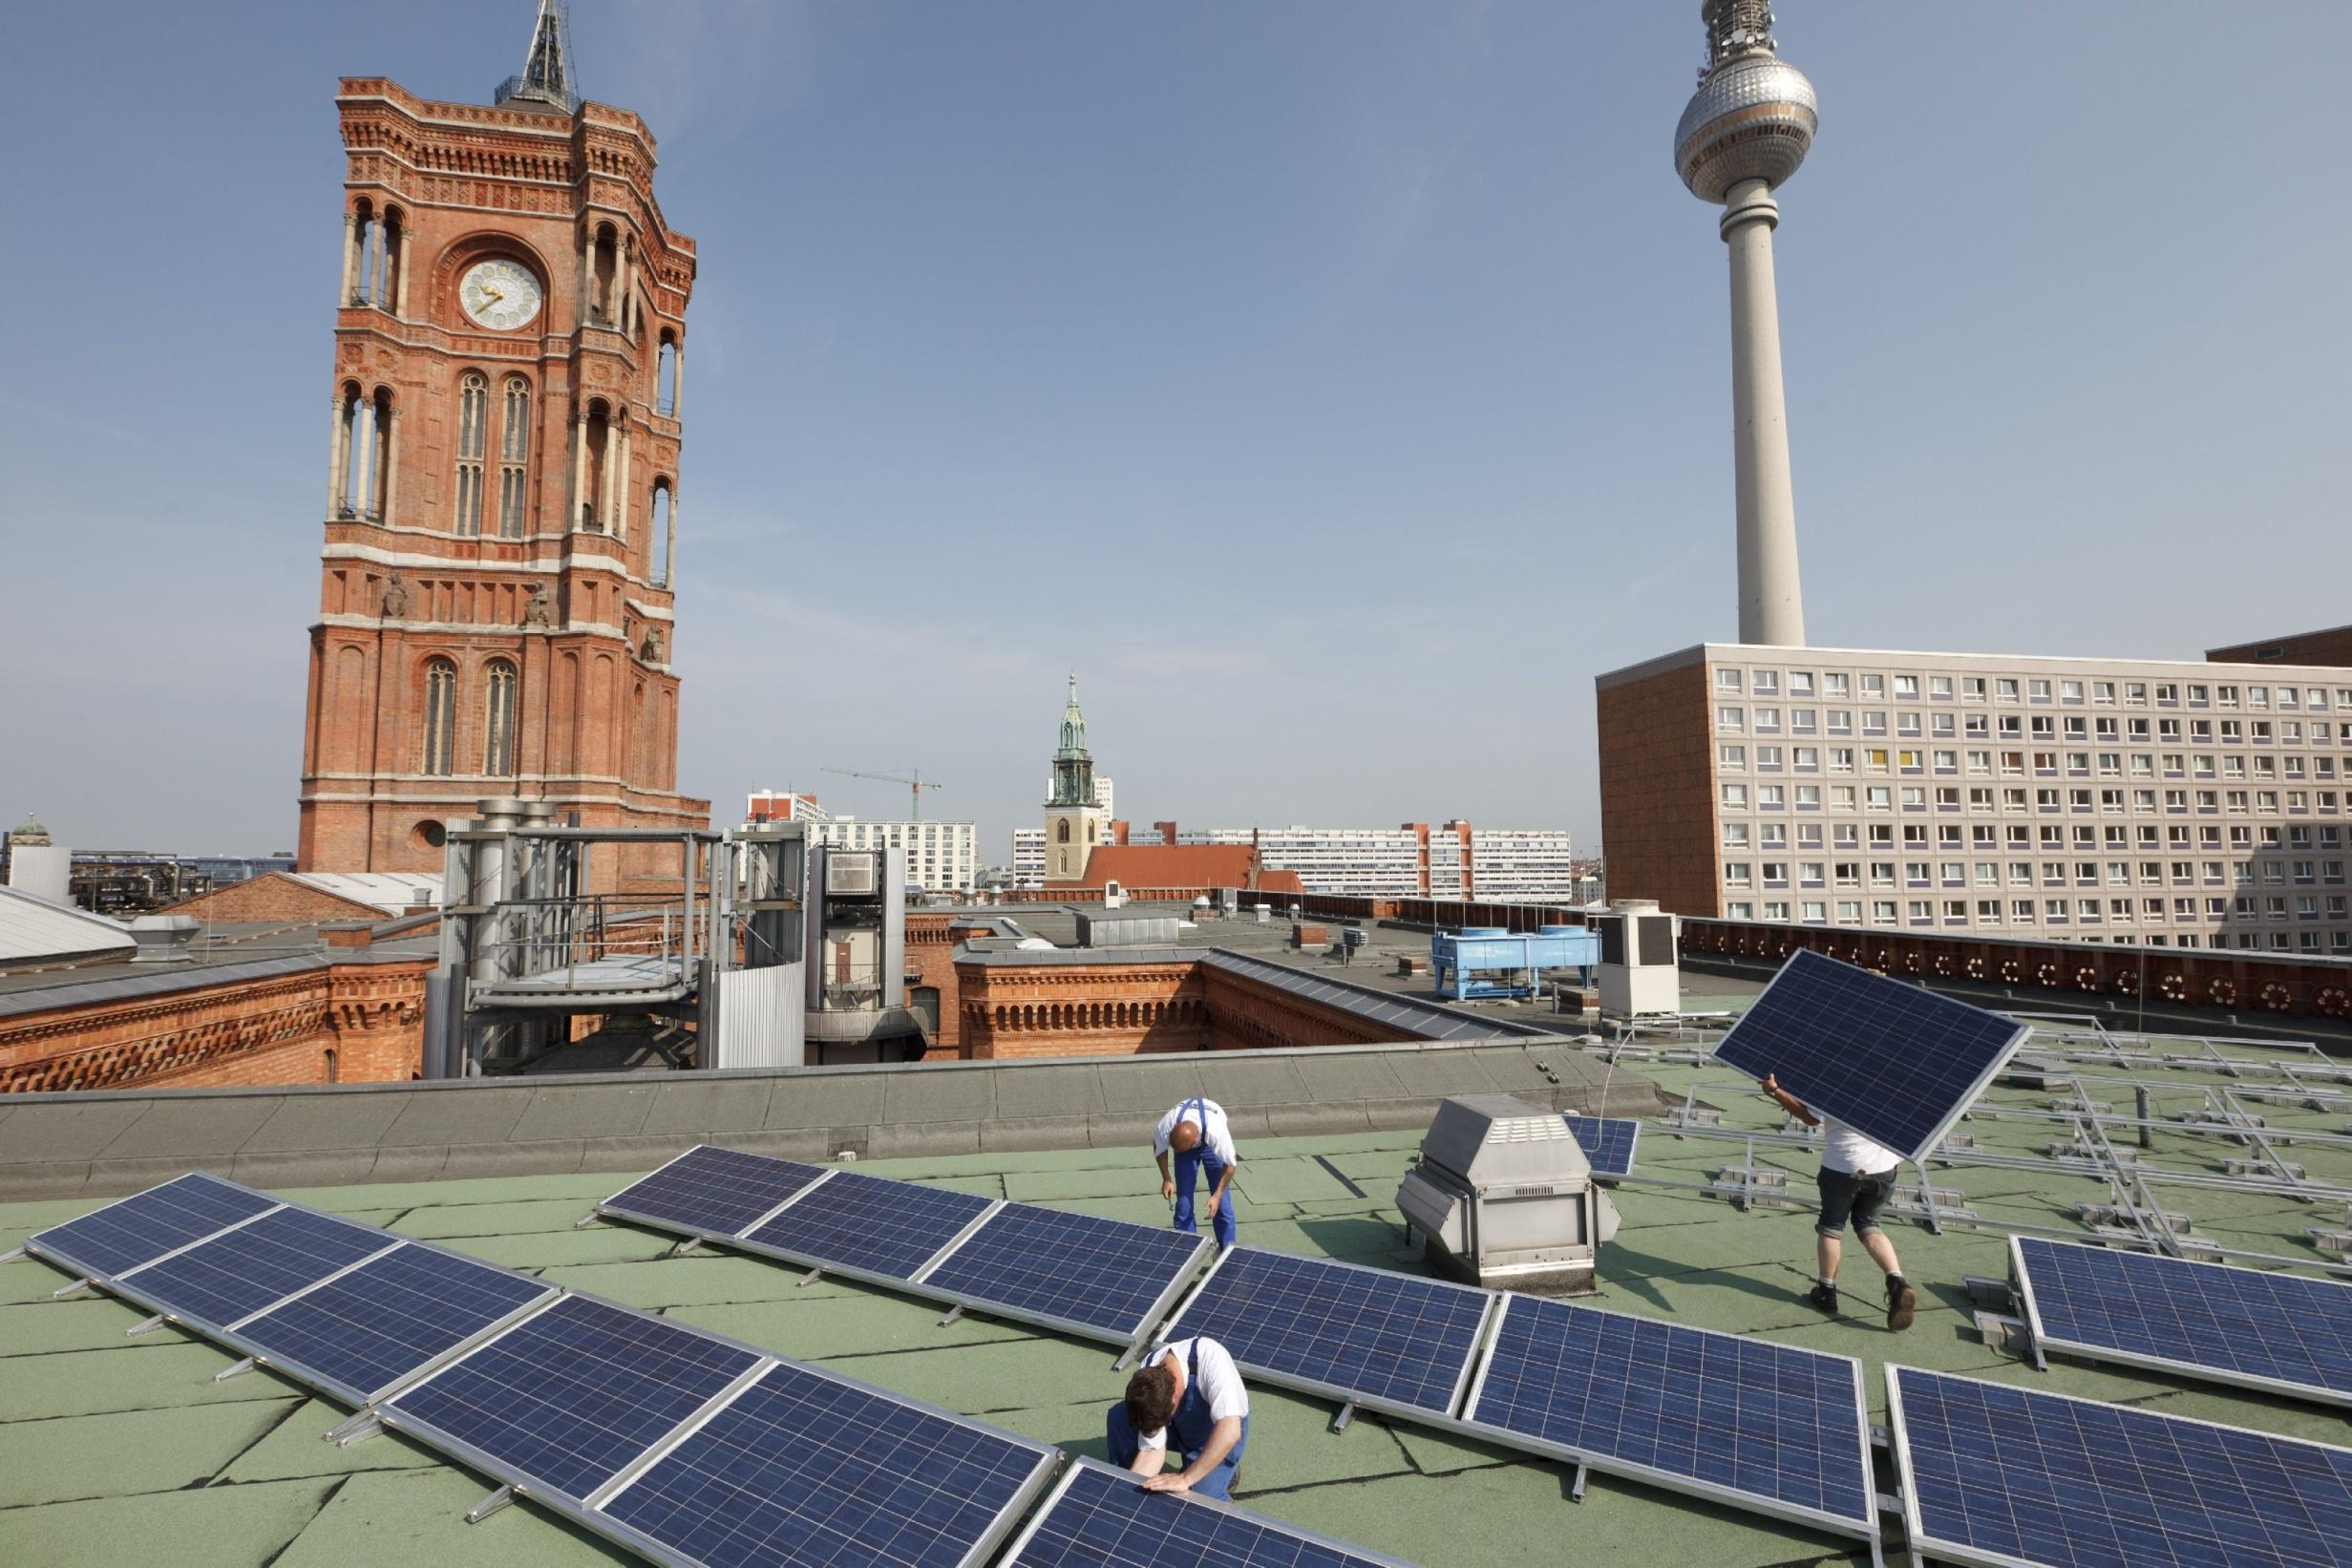 Installation of a PV plant on the City Hall of Berlin